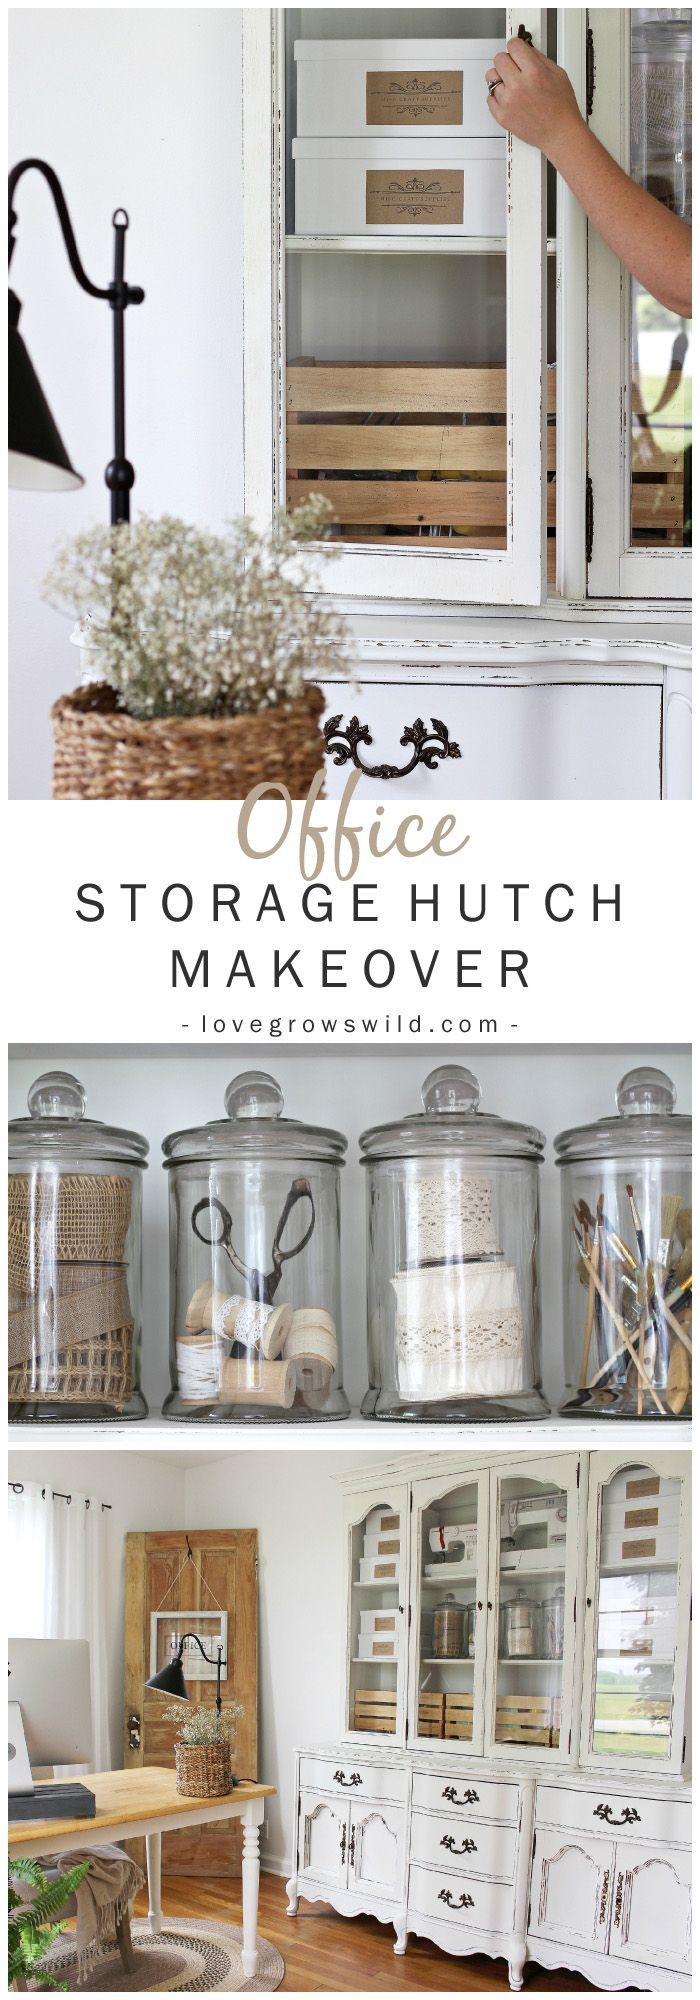 office storage hutch makeover pictures for an k